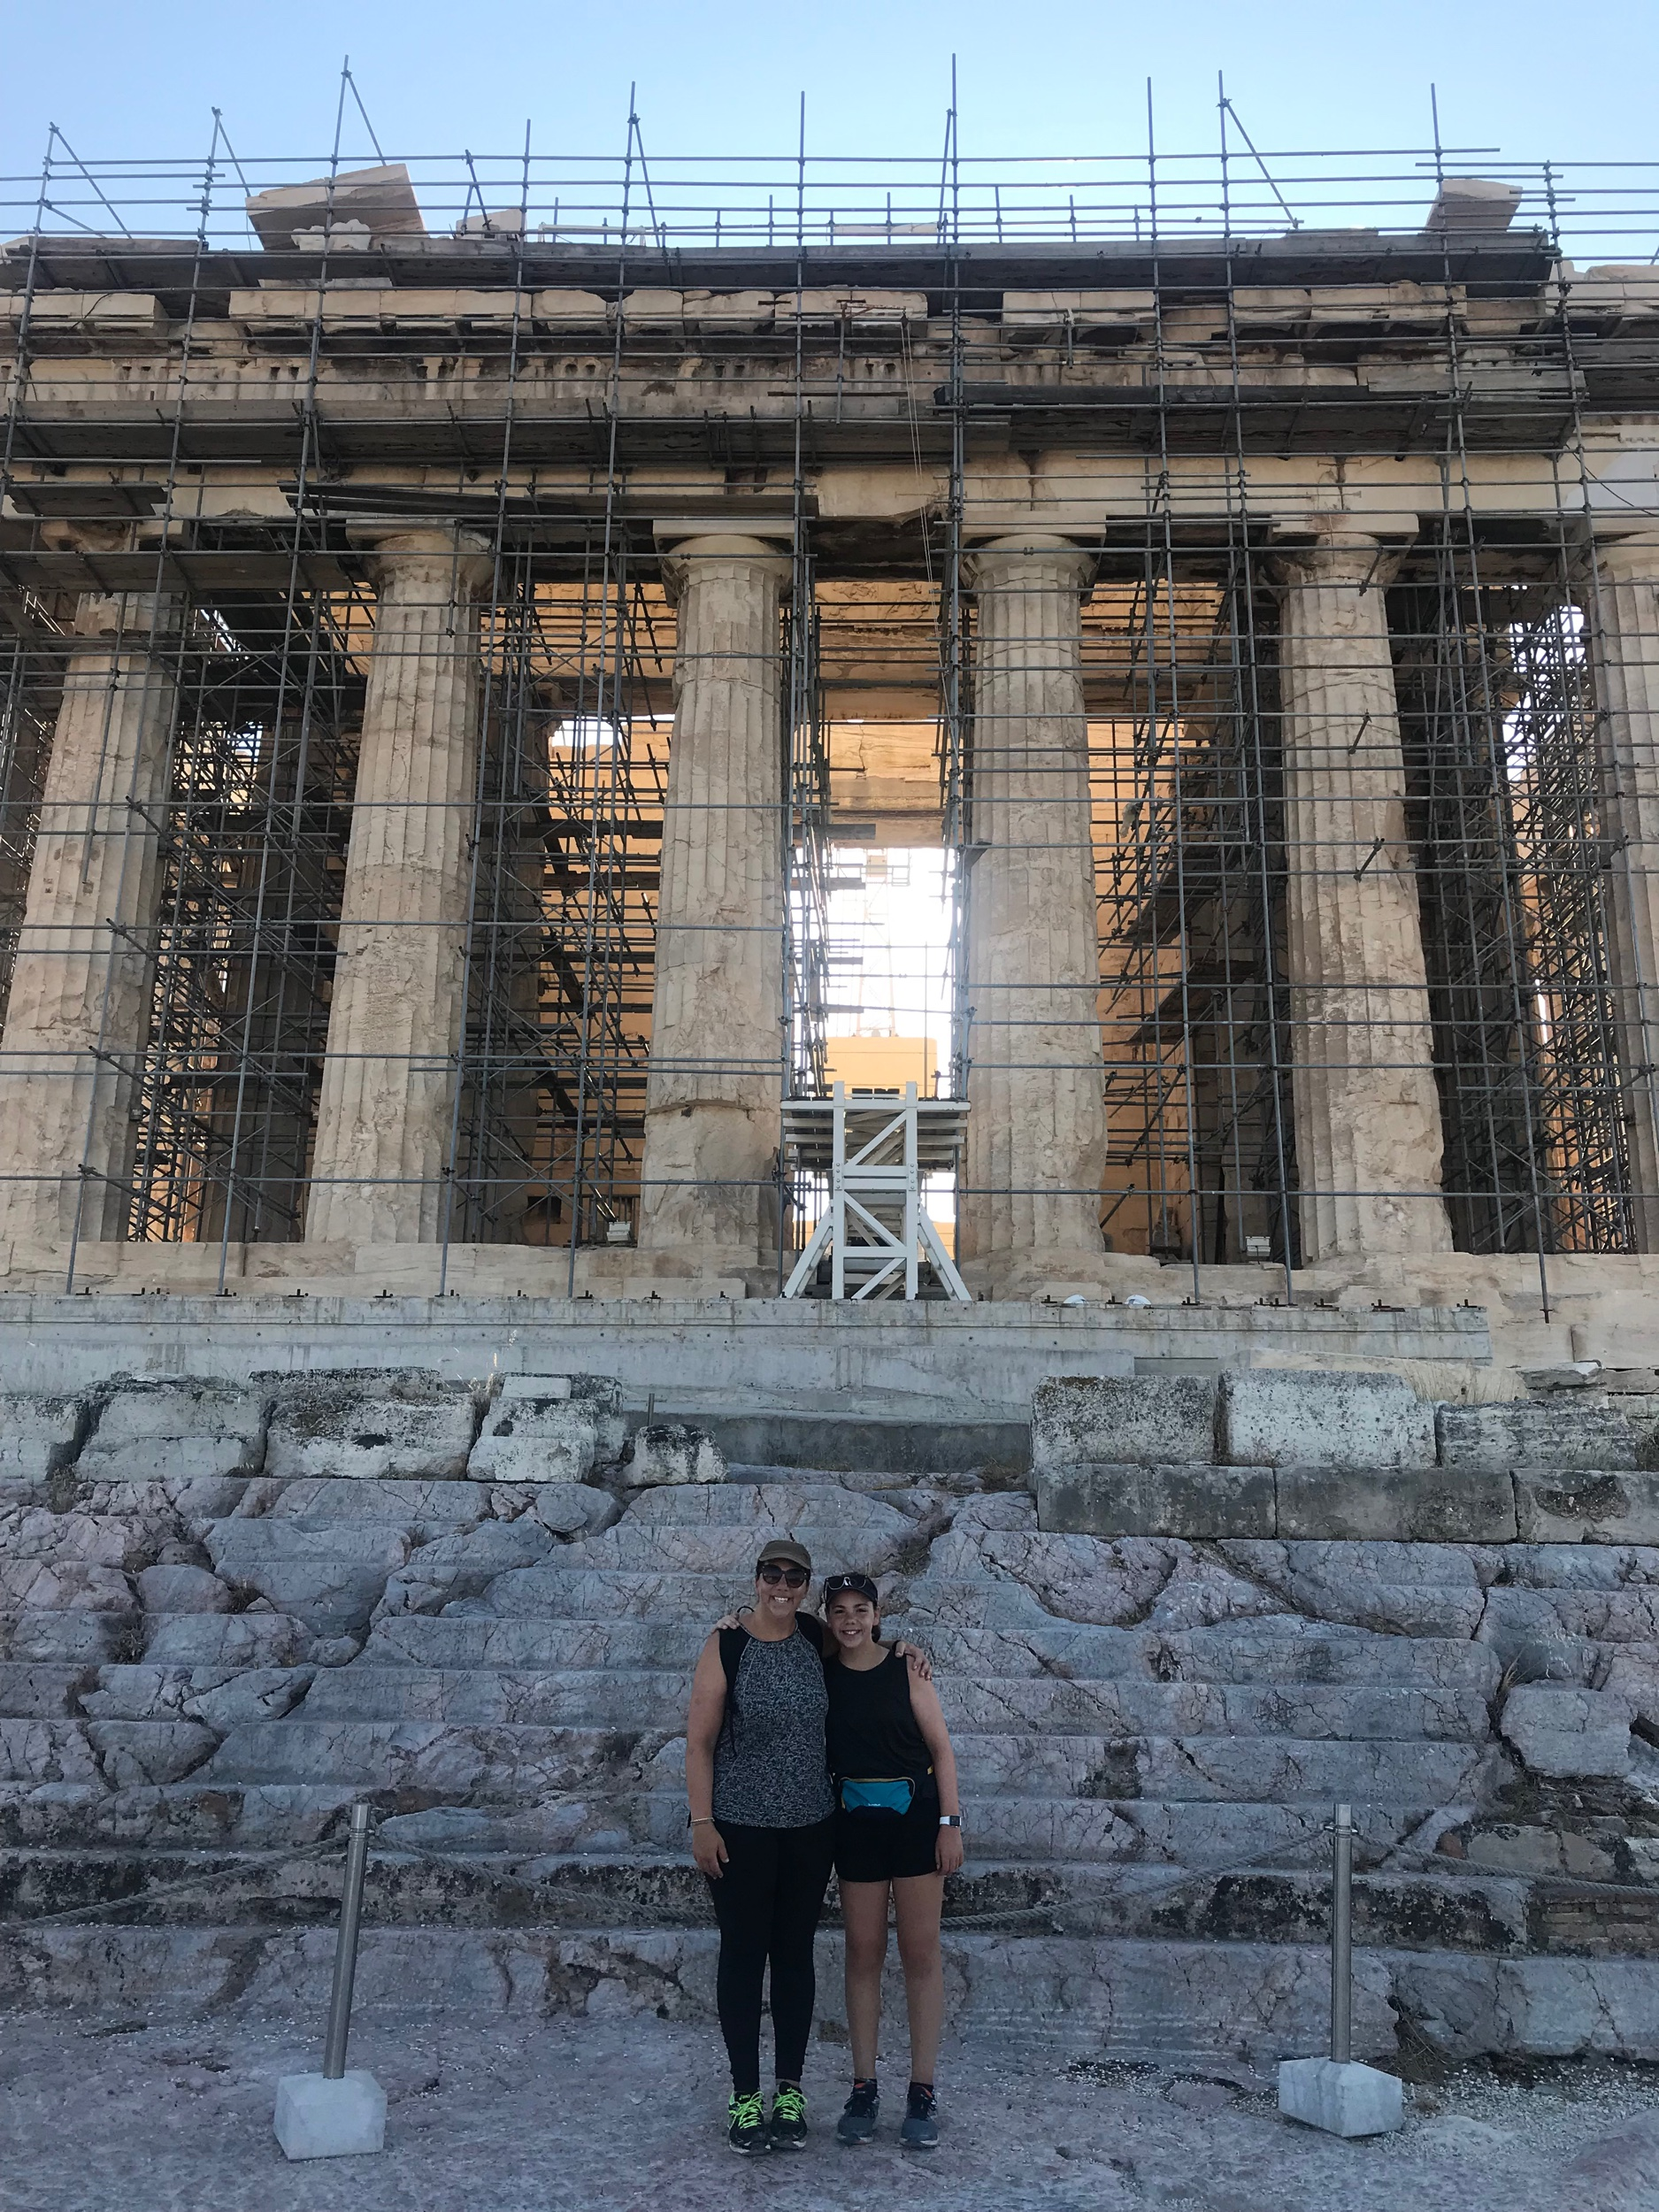 Day 30: Athens; The Acropolis, Plaka, Marousi - This morning, Mum and Dad woke us up at 7:00 am, and told us that we're having a 'historical day'. After we had breakfast in the apartment, we packed our bags, and booked an Uber. At 8:00, we drove just 5 minutes to the Acropolis, where we walked around panthanon, and all the old ruins. Audrey and I found it interesting, however Polly not so much, even though she's the one who's into Greek mythology. Then, we walked 10 minutes to the town of Plaka. Mum and dad sat in a cafe, while Polly, Audrey, and I walked around town, in and out of shops. By 1:00pm, we were all hungry, so we decided to walk a few minutes to an amazing Mexican restaurant (which was my choice)! The food was surprisingly amazing, due to the fact that we're in Athens, Greece. After lunch, we walked around the shops a bit more, and then walked directly to a shopping mall that mum found online. We finally got there after walking 20 minutes in 30 degree heat, to find an open-air mall with about 2 shops. We we all so hot and grumpy by this point, that we researched other shopping centres to go to. We found a massive one about a 25 minute drive away, so we flagged down a taxi, and drove to the centre in Maraosi. It was huge, and modern, with heaps of shops. Dad and Audrey hate shopping, so sat in a cafe while Polly, mum and I walked all around the shops. After walking around for 2 hours, we were exhausted and ready to leave, so we hopped in a cab, and were home, within half an hour. When we arrived home, we cooked up a batch of scrambled eggs, and ate dinner, in front of the TV.